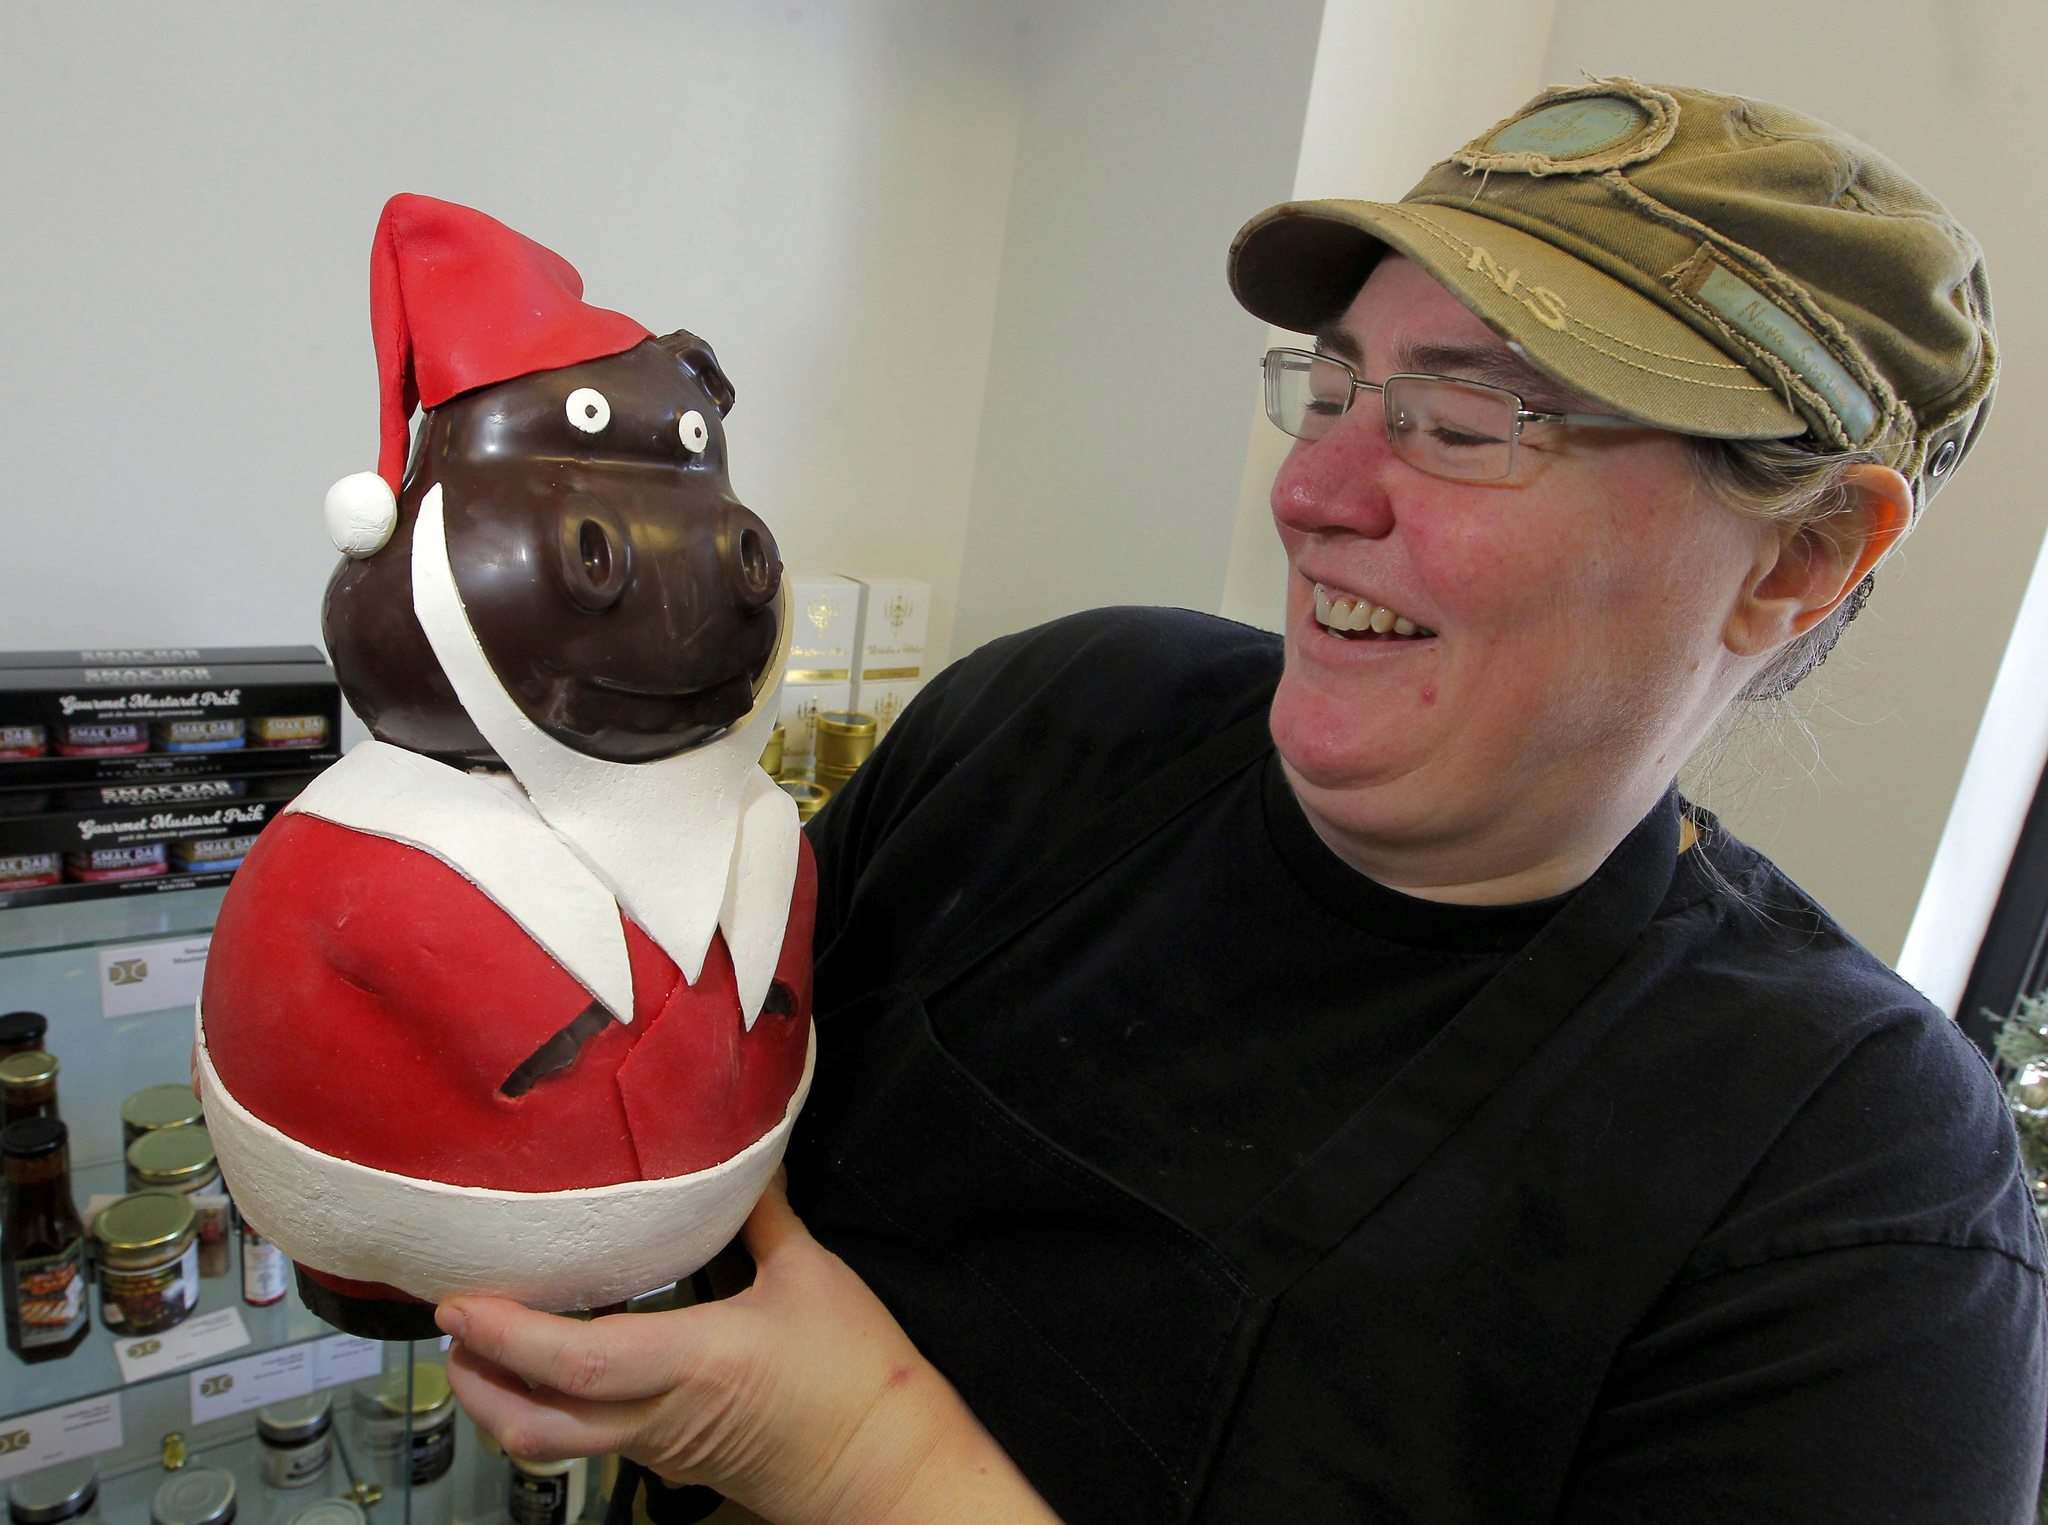 BORIS MINKEVICH / WINNIPEG FREE PRESS</p><p>SUNDAY THIS CITY - Decadence Chocolates on Sherbrook St. Owner Helen Staines poses with one of the Christmasy chocolate creations she makes for the holiday season. This is a over 2kg chocolate pig. DAVE SANDERSON STORY. Dec. 13, 2016</p></p>